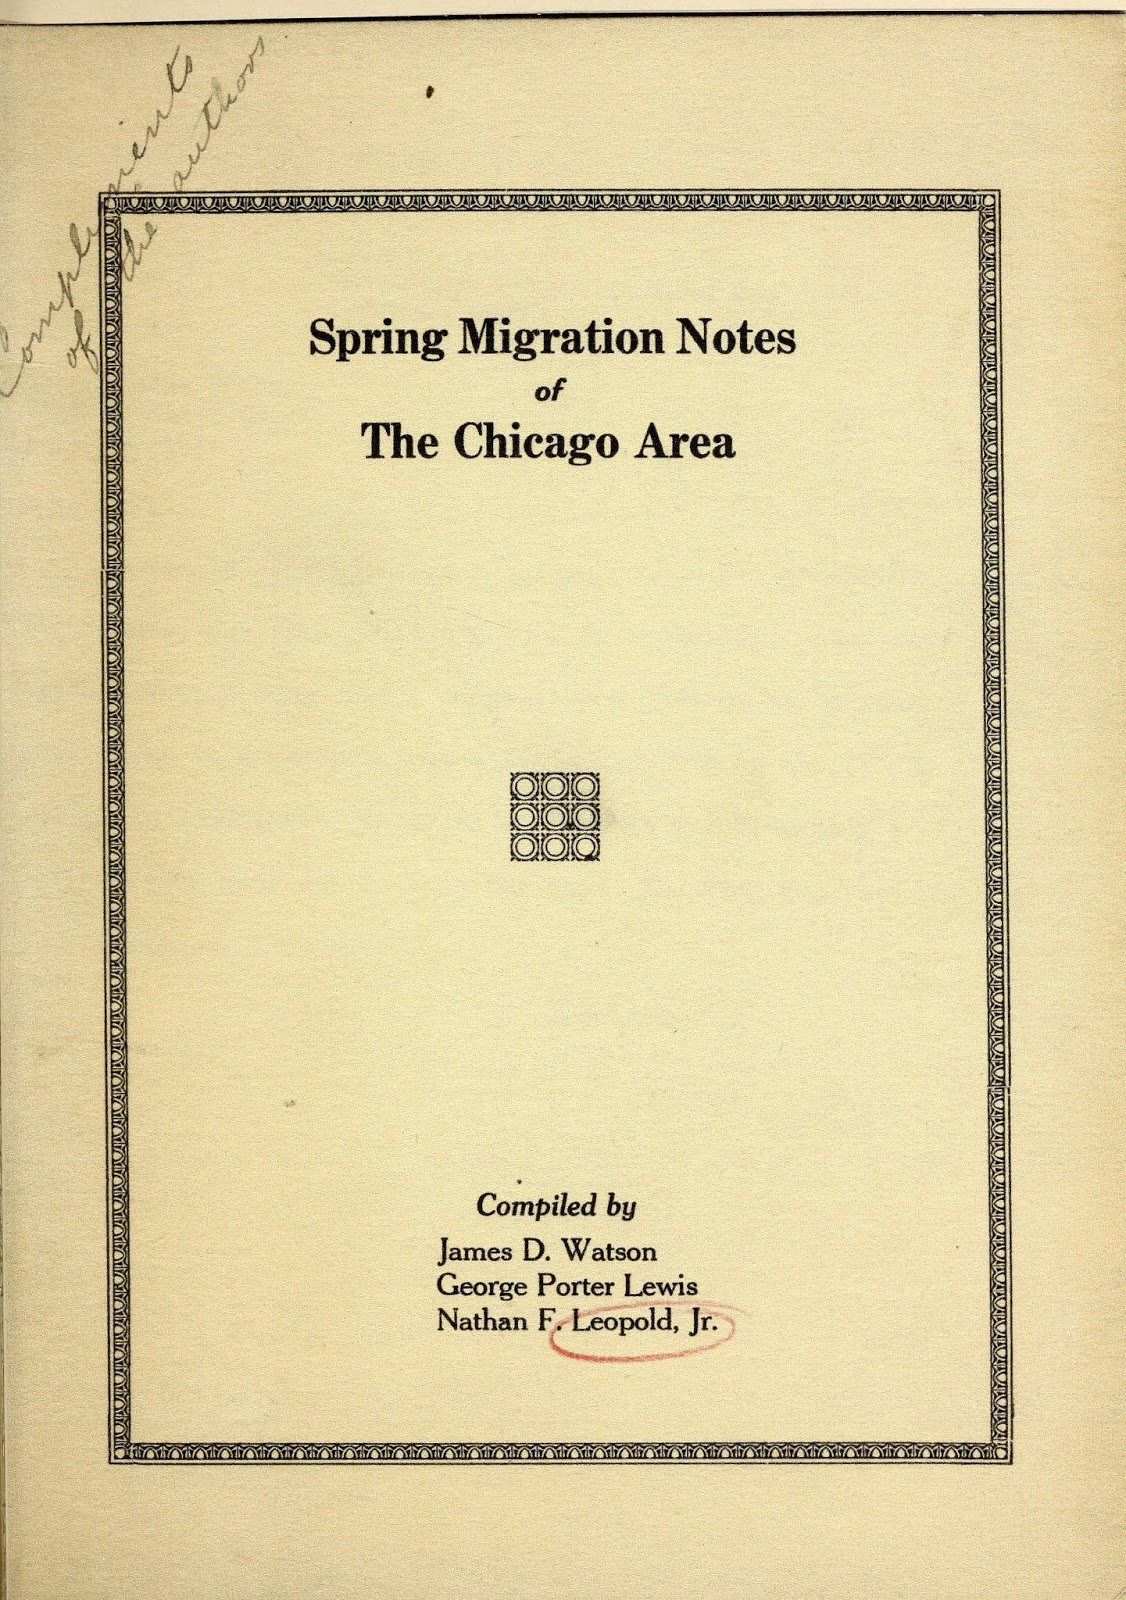 Yellowed paper with a book title and author information, and a decorative black border around the page